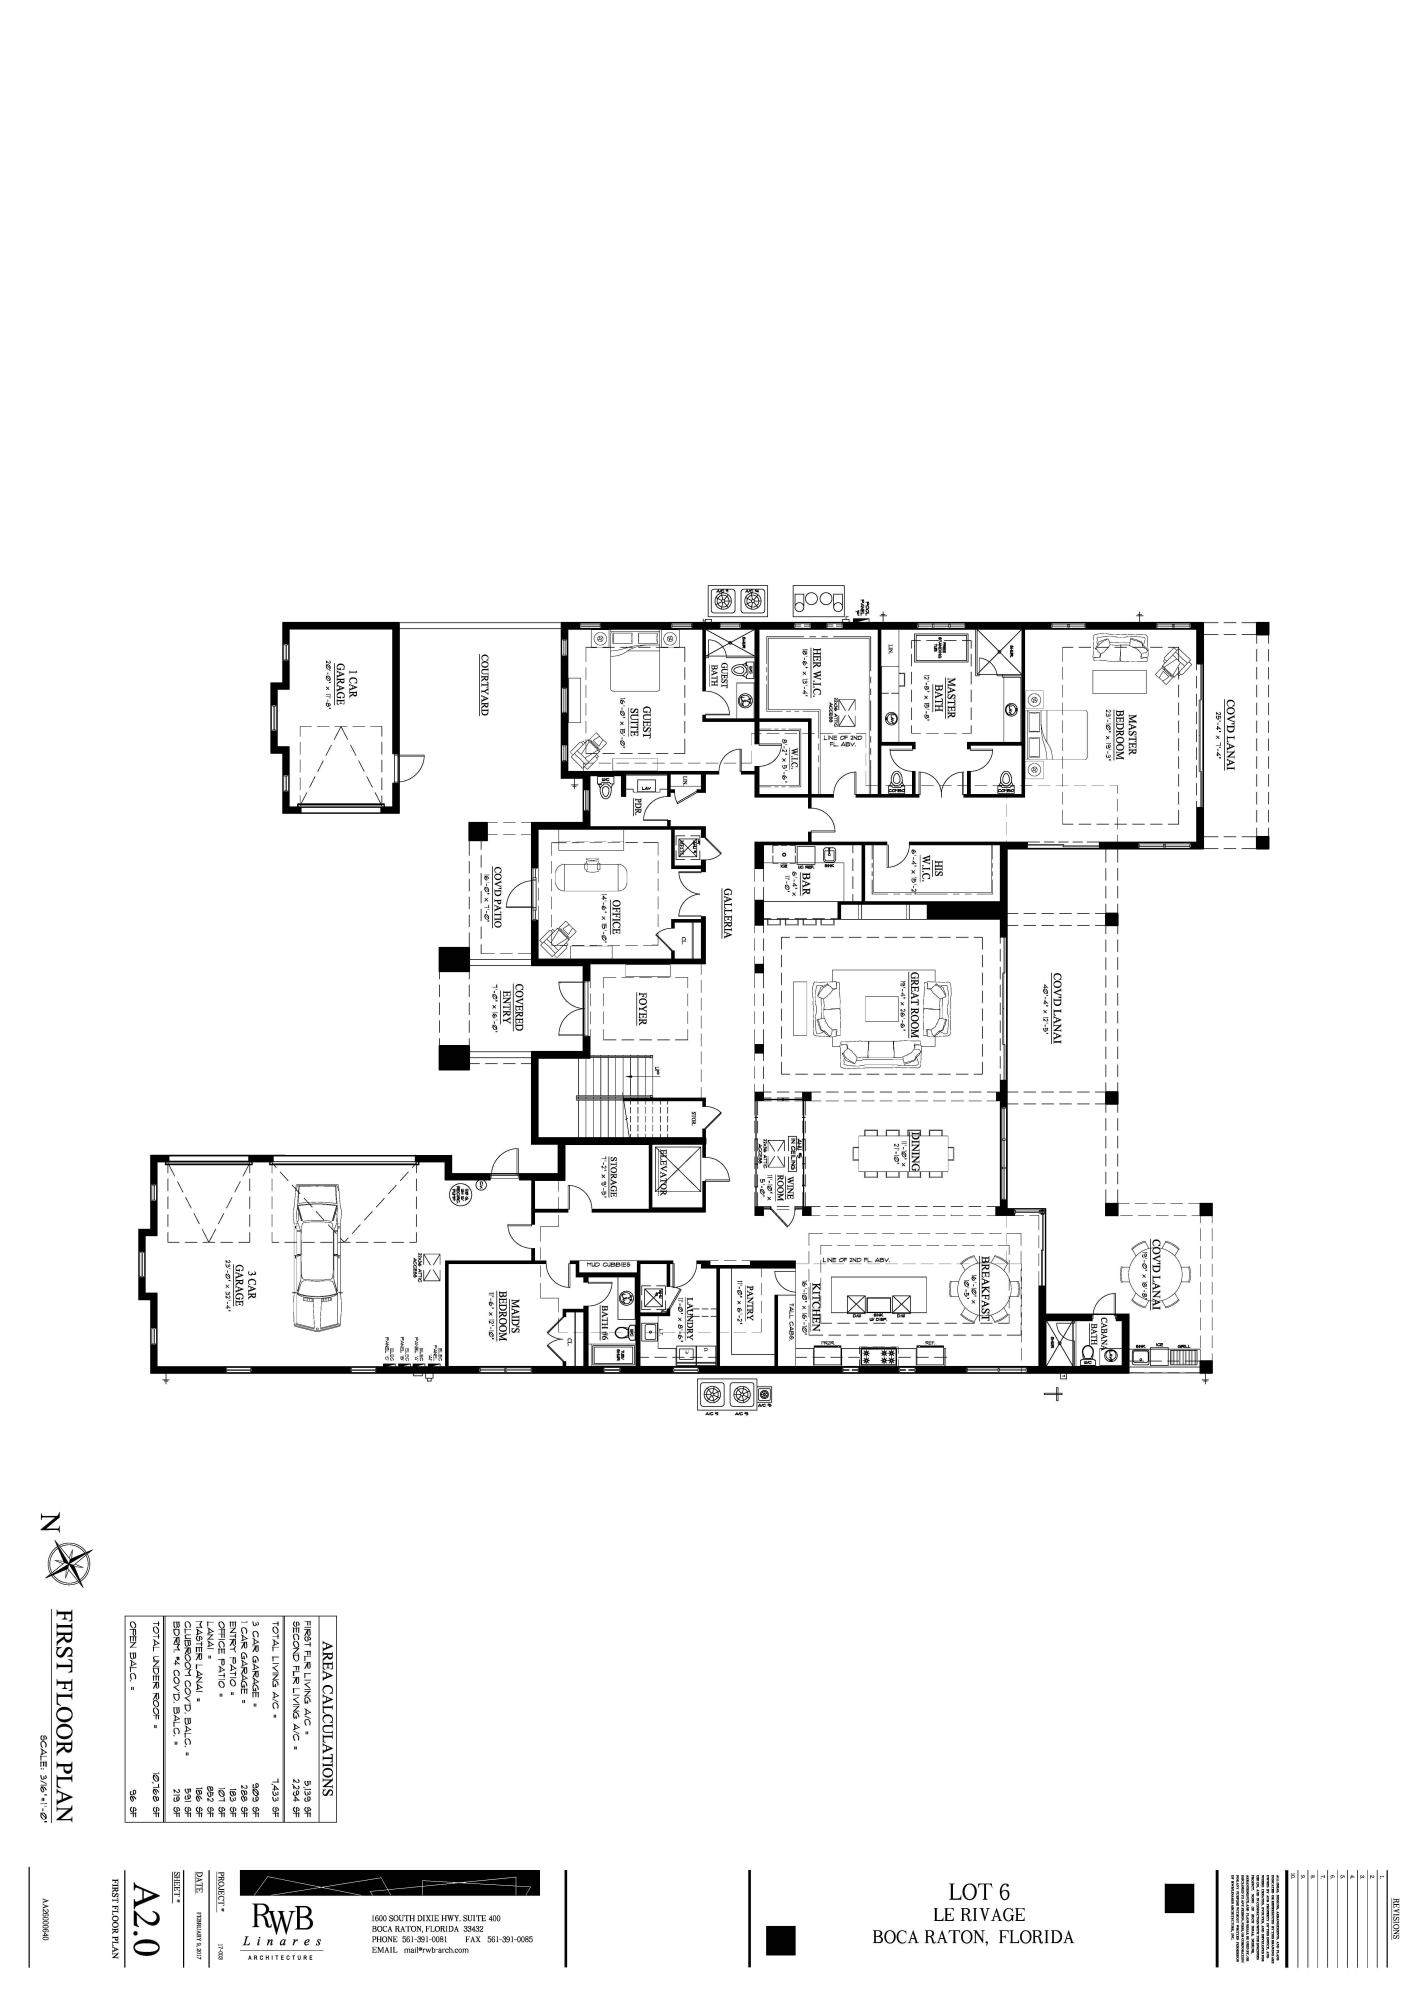 LOT 6 LE RIVAGE - A2.0 First Floor Plan